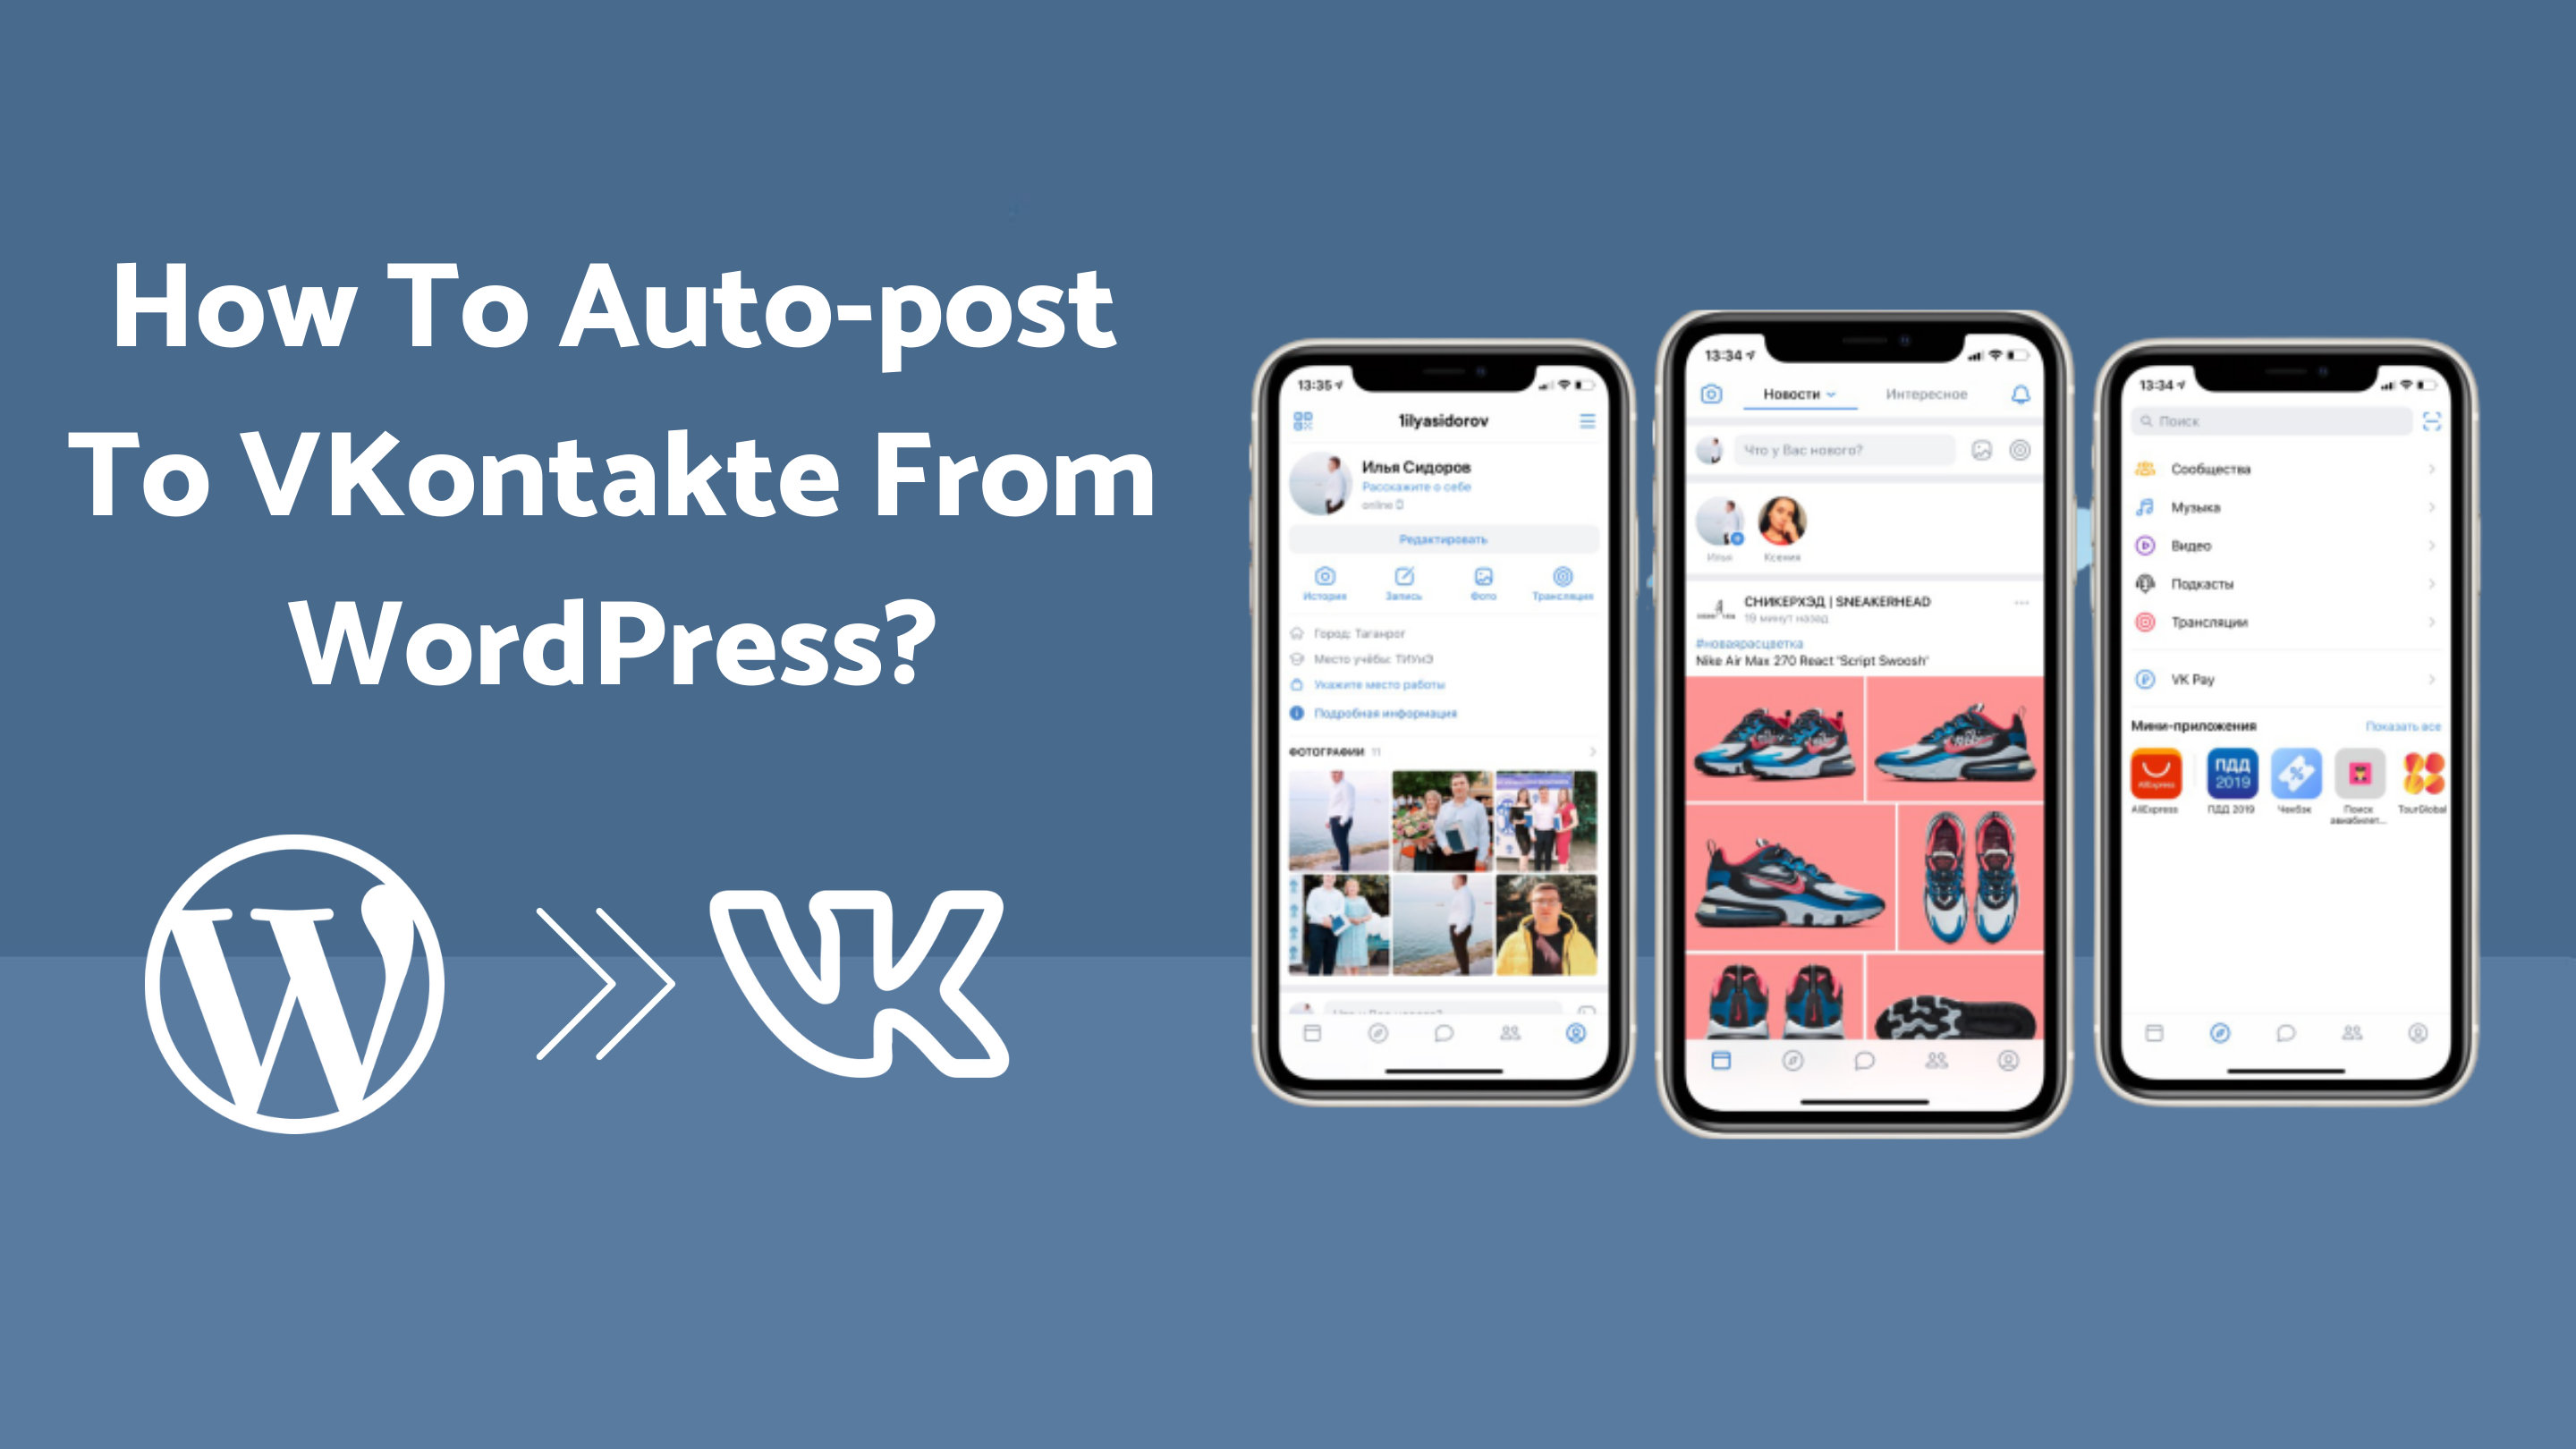 How to Auto-Post to VKontakte from WordPress [A complete guide]